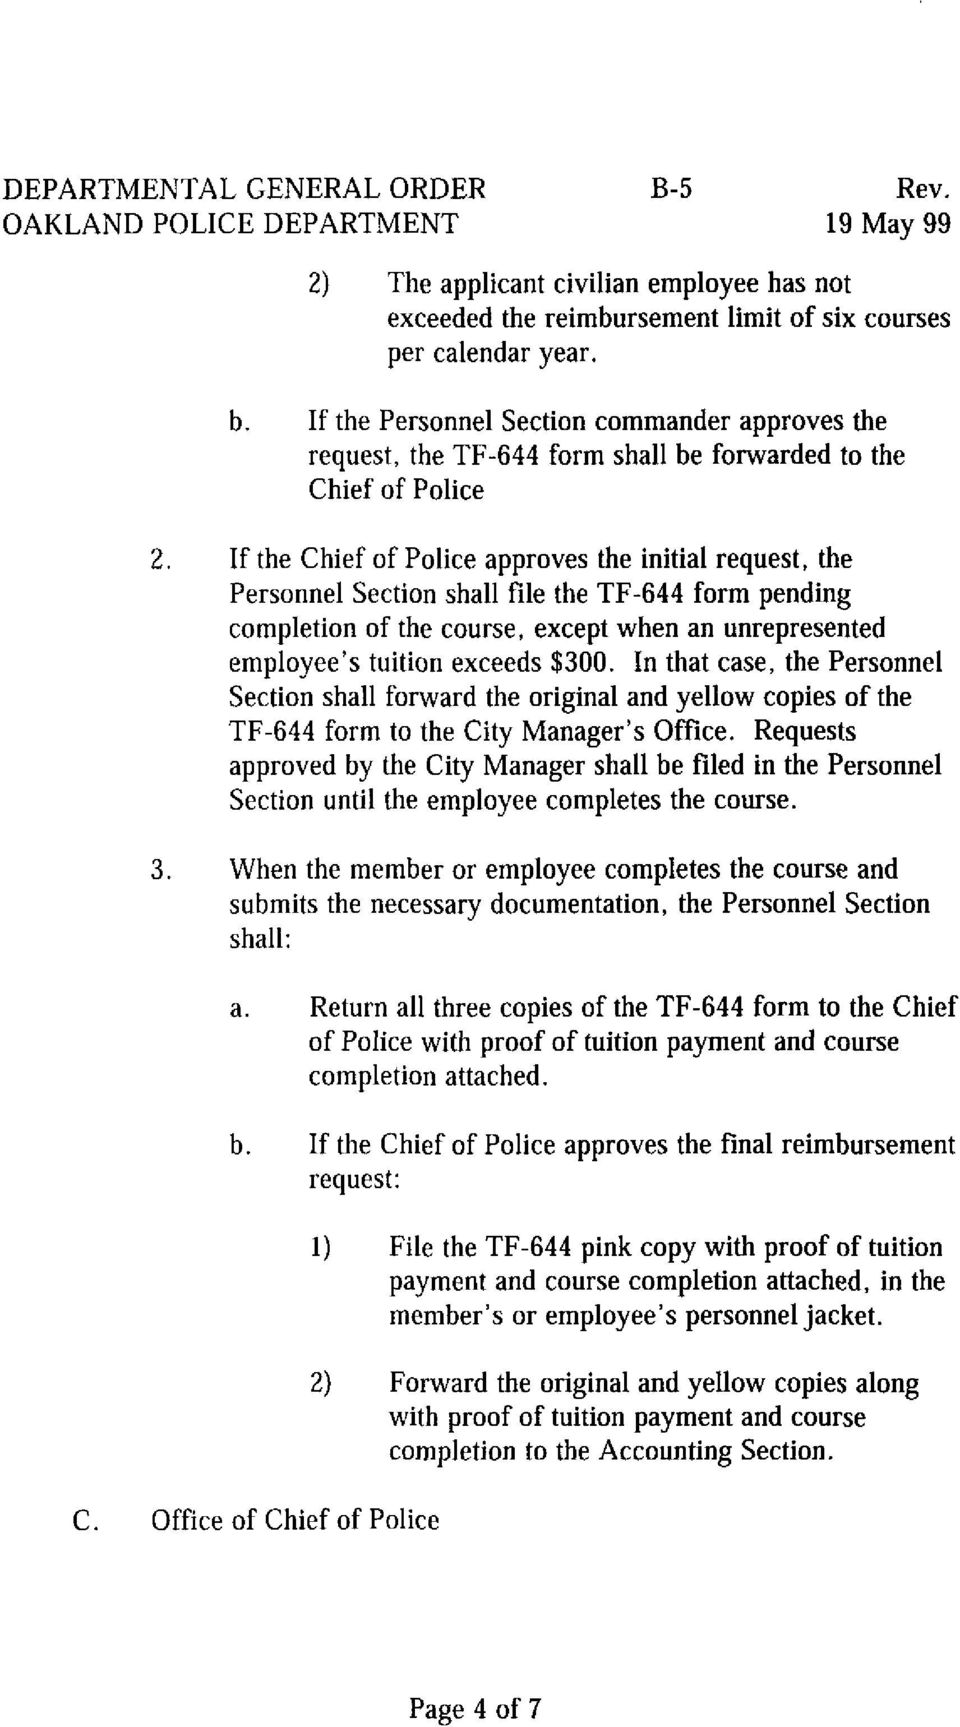 If the Chief of Police approves the initial request, the Personnel Section shall file the TF-644 form pending completion of the course, except when an unrepresented employee's tuition exceeds $300.